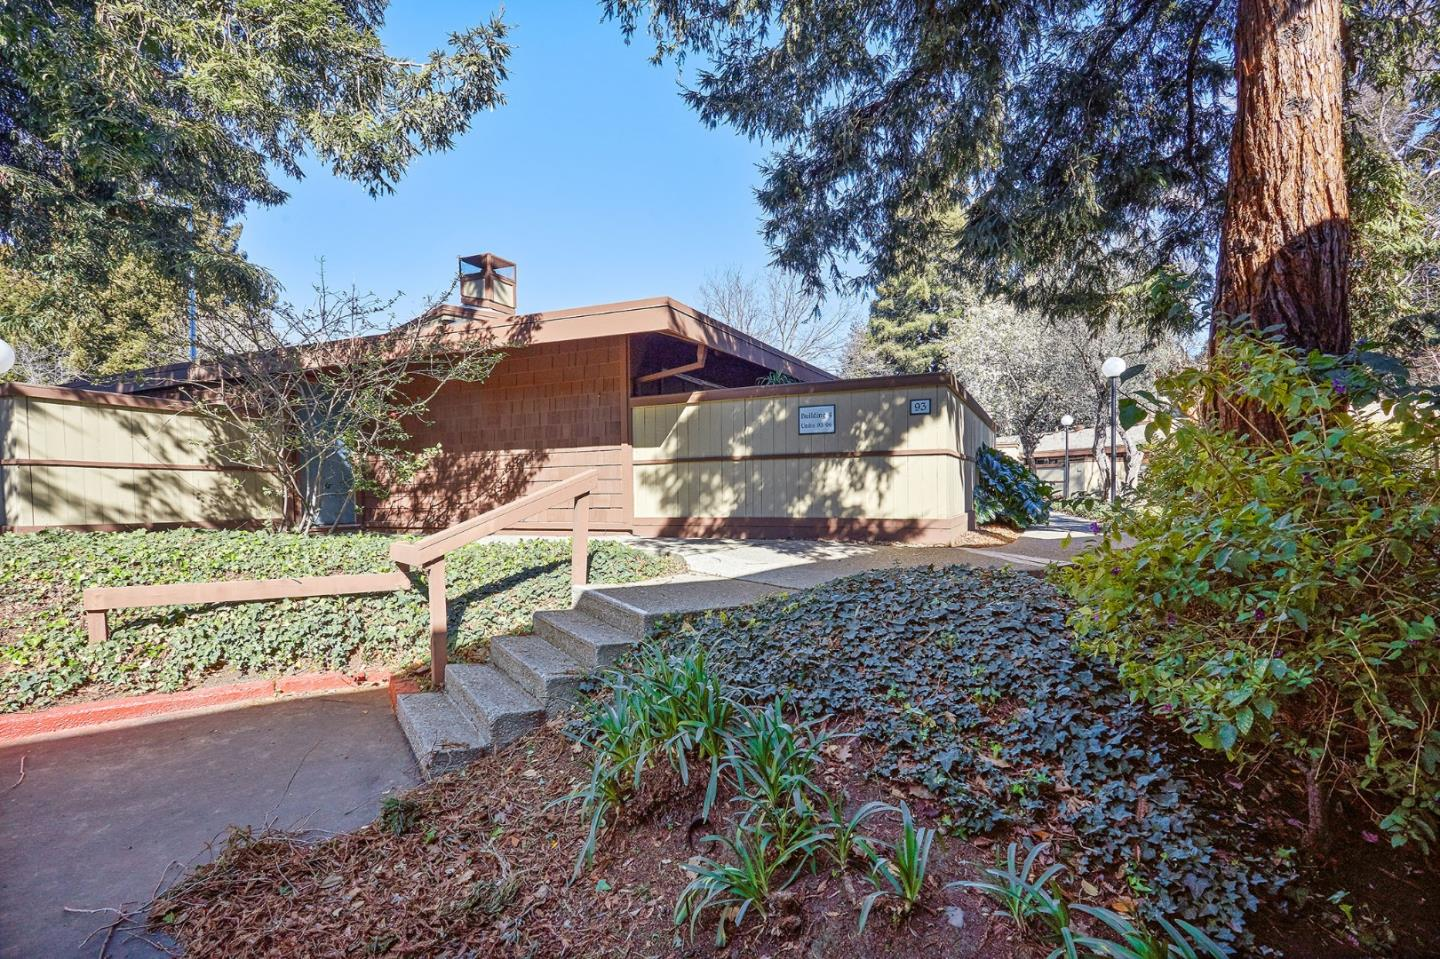 500 W MIDDLEFIELD RD 93, MOUNTAIN VIEW, CA 94043